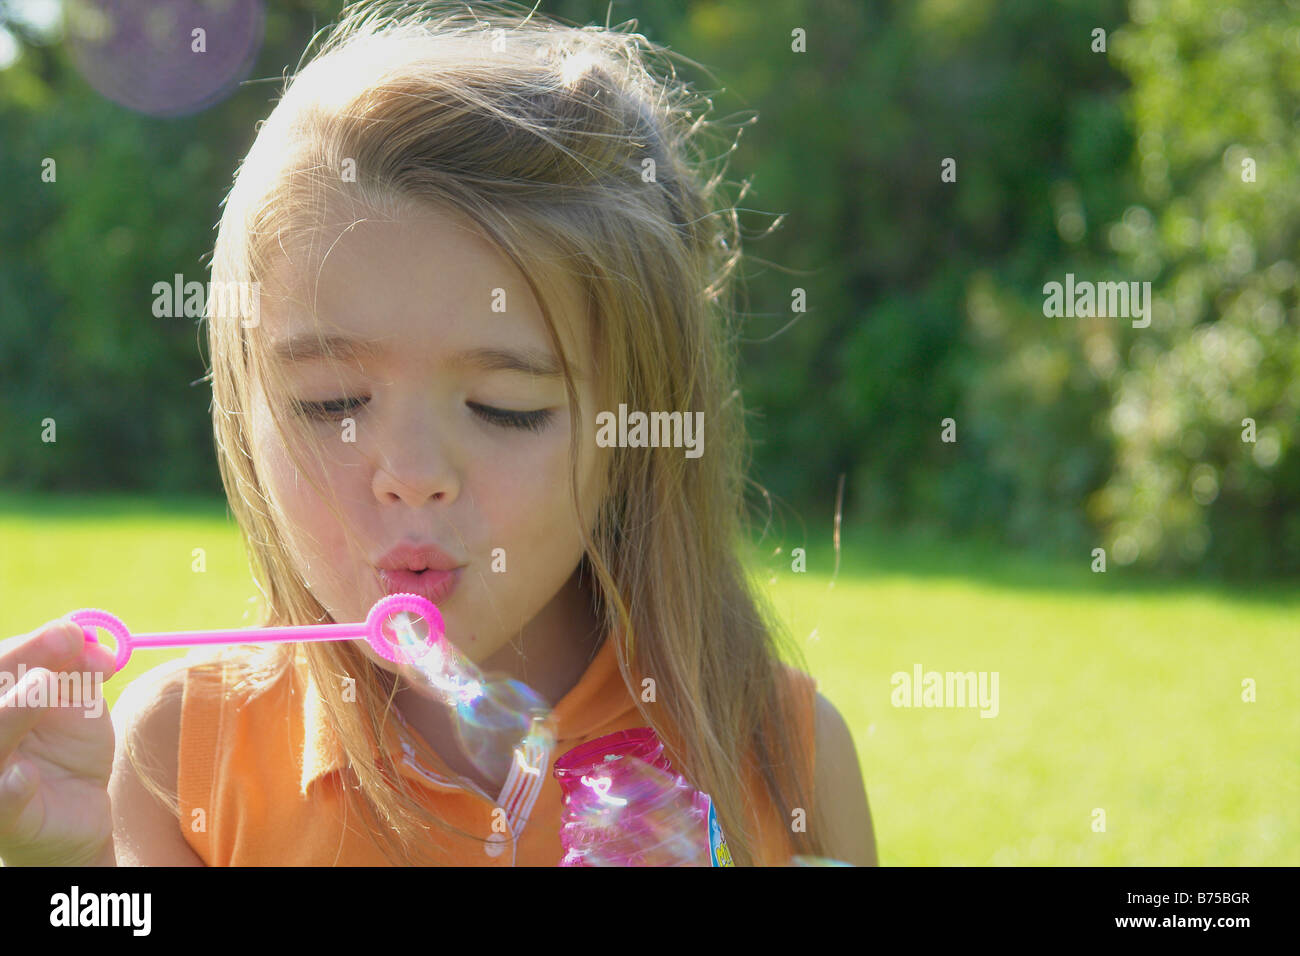 Six year old girl blowing bubbles in park, Winnipeg, Canada - Stock Image